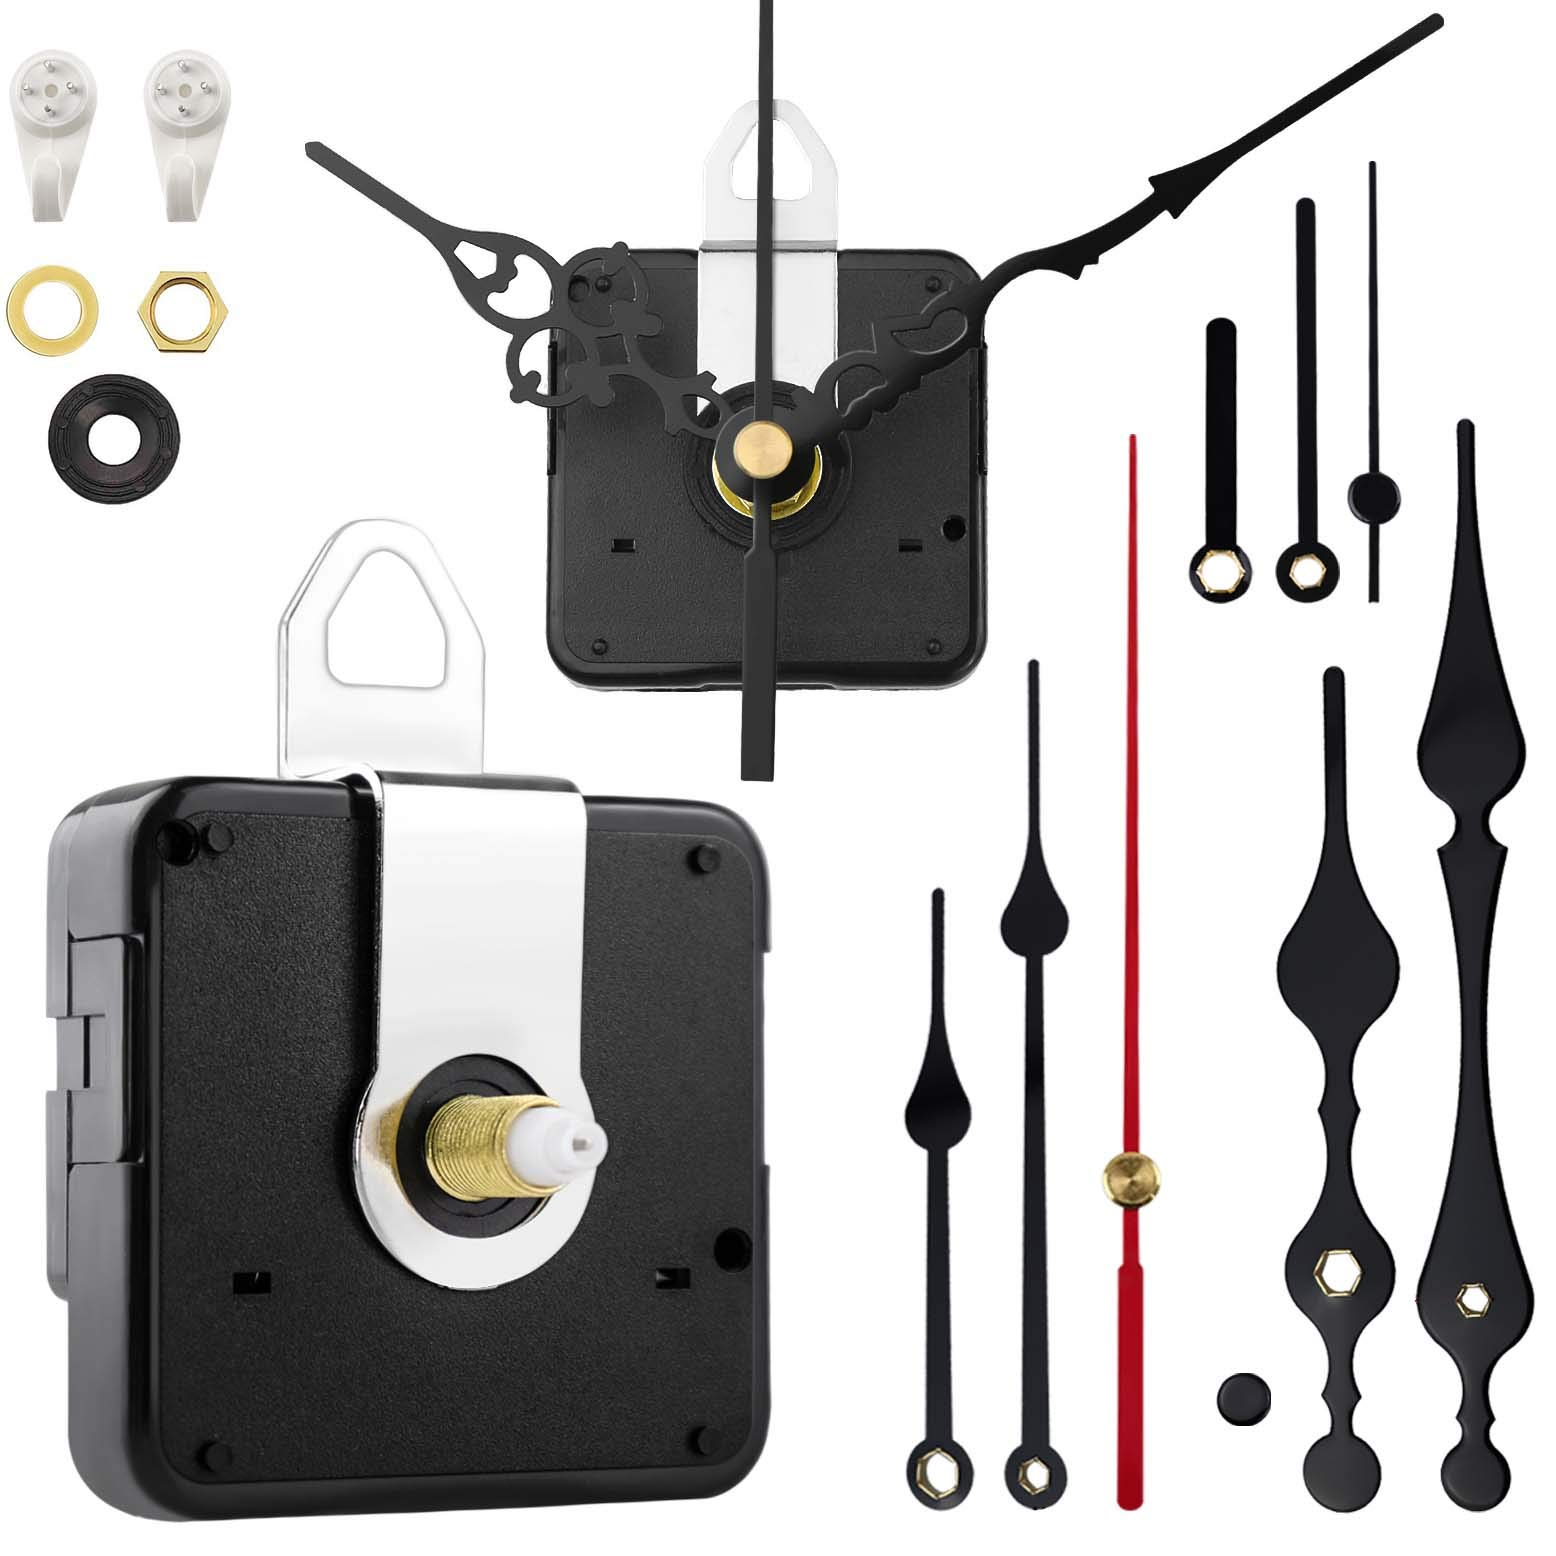 StFlyBro 2 Pieces High Torque Non Ticking Clock Movement Mechanism with 4 Pack Clock Hands, DIY Quartz Clock Motor Kit, Battery Operated Repair Parts Replacement, 7/10in (17.5mm)